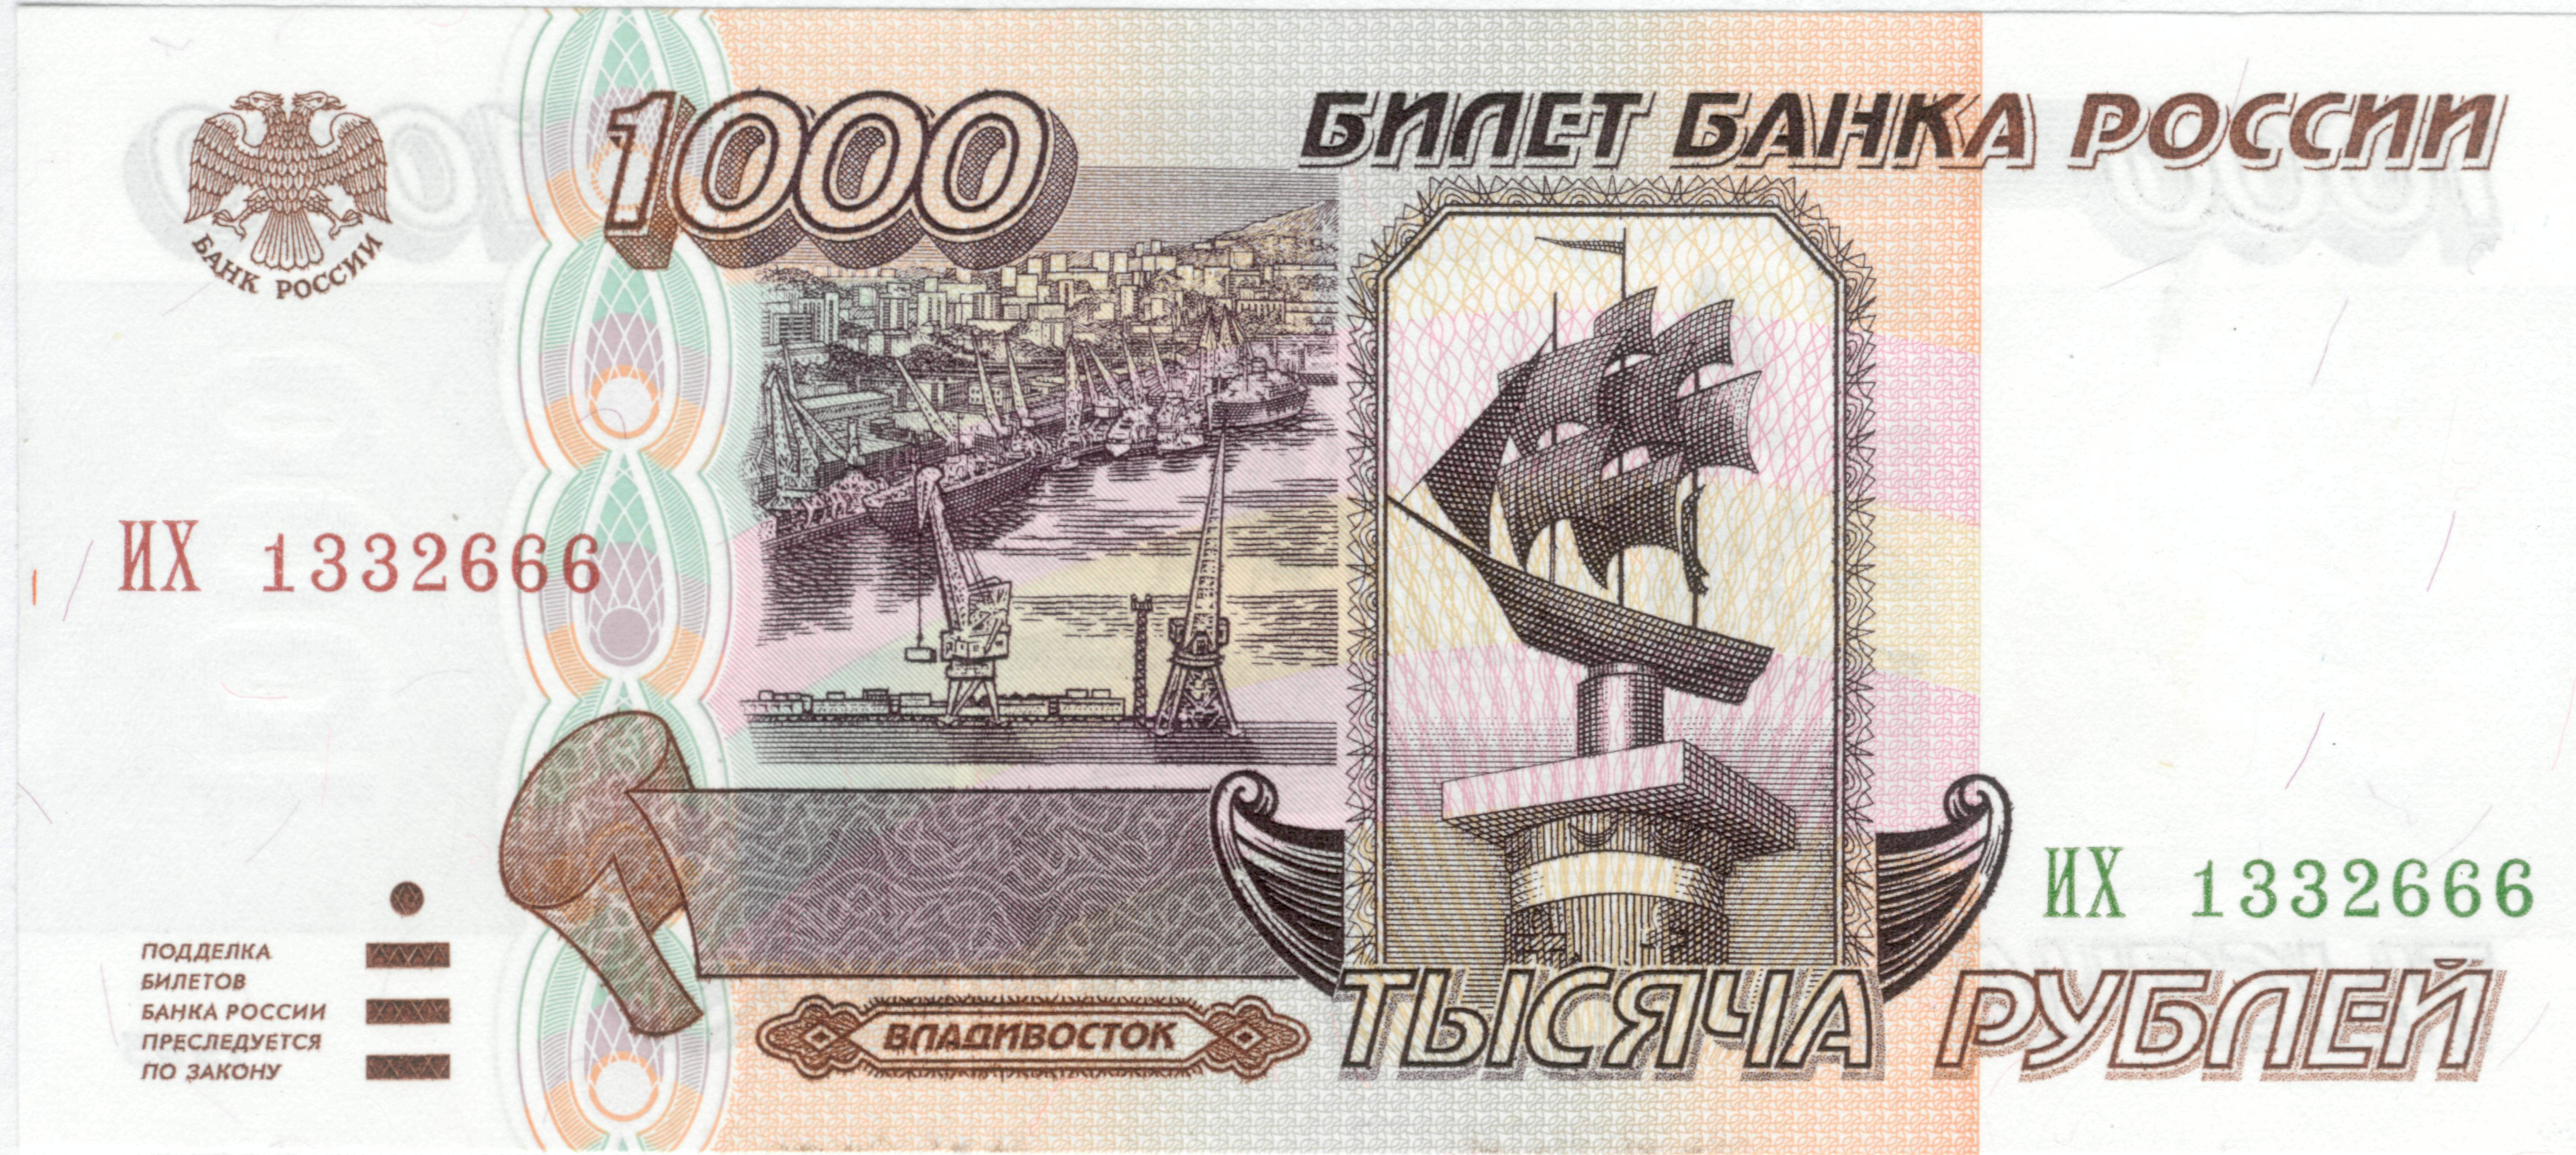 Banknote_1000_rubles_%281995%29_front.jp